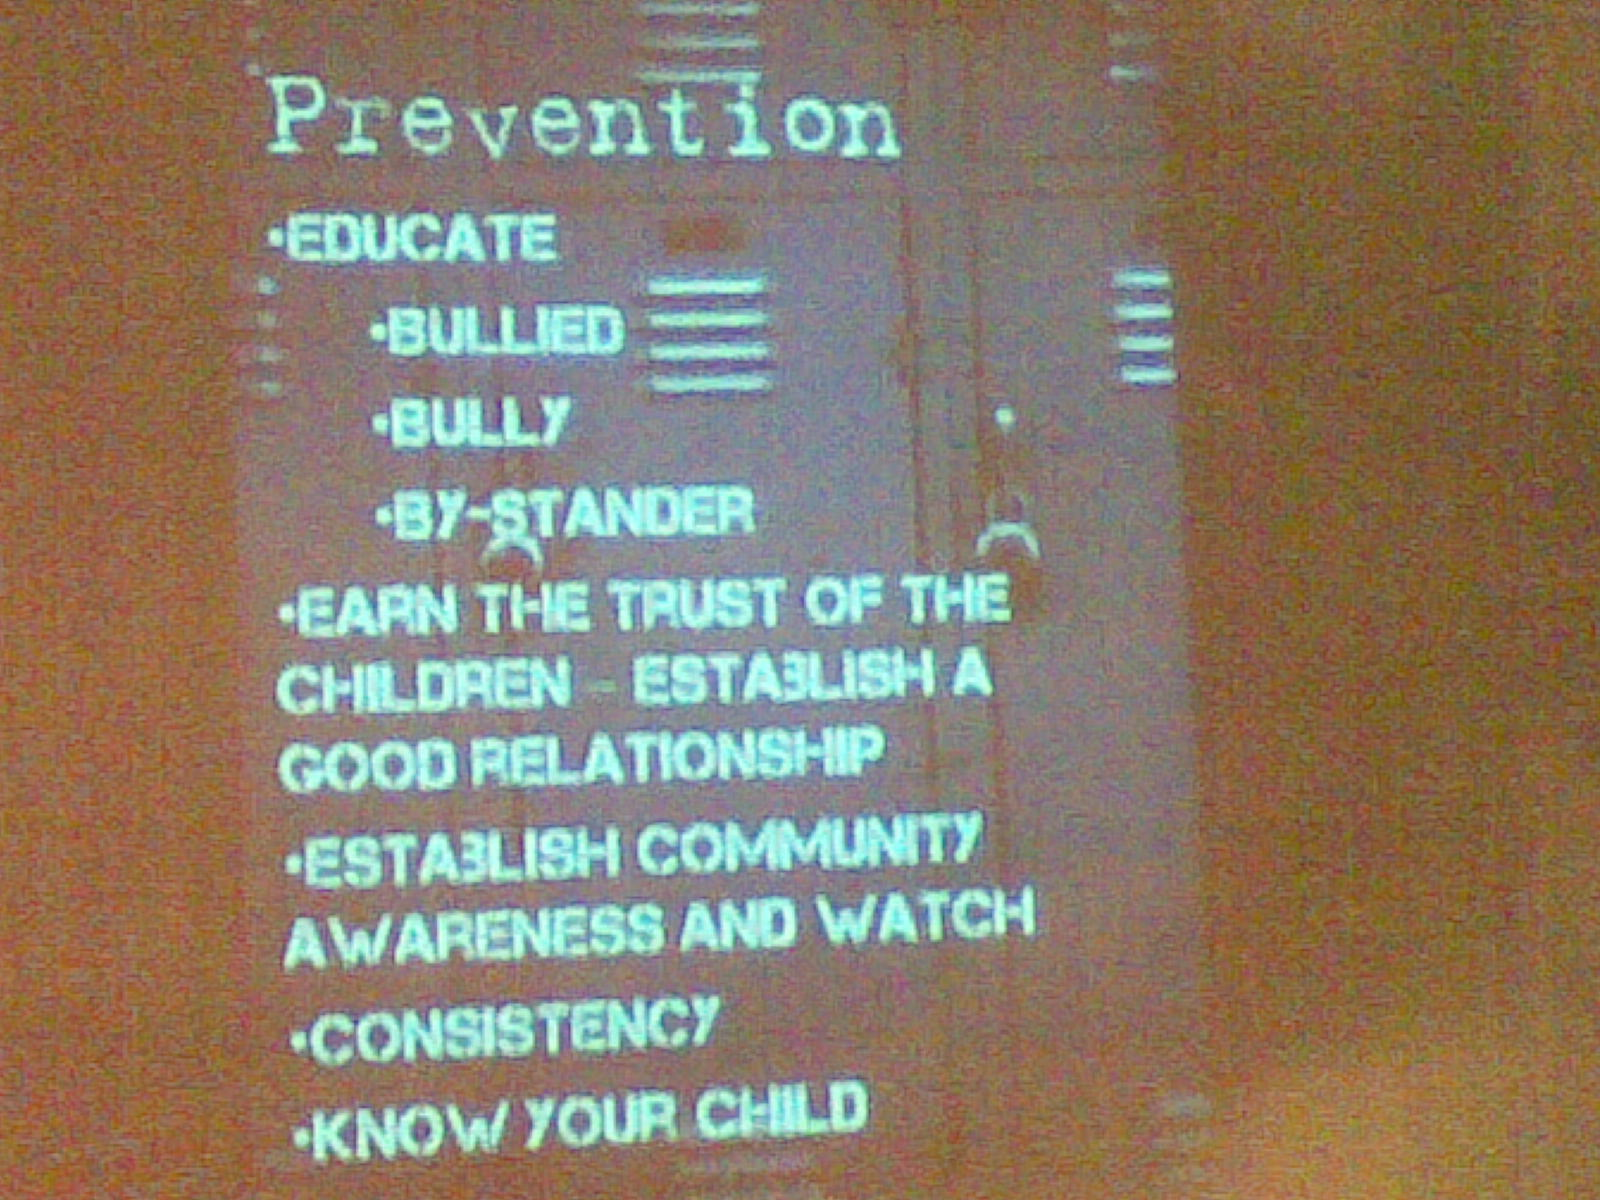 the programs of anti bullying All schools implement an anti-bullying plan that outlines strategies for preventing and responding to student bullying.